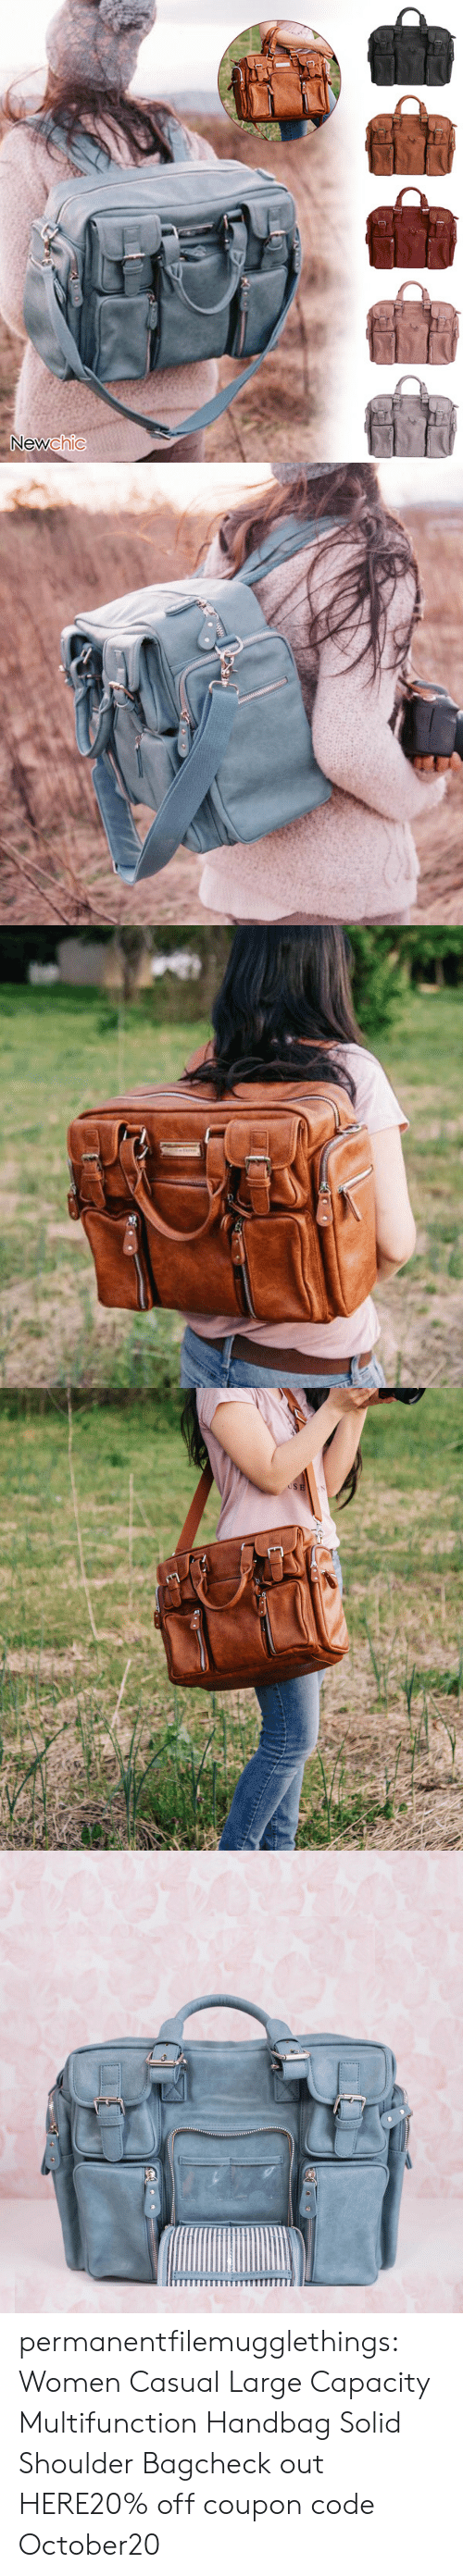 Tumblr, Blog, and Women: Newchic   USE permanentfilemugglethings:  Women Casual Large Capacity Multifunction Handbag Solid Shoulder Bagcheck out HERE20% off coupon code:October20